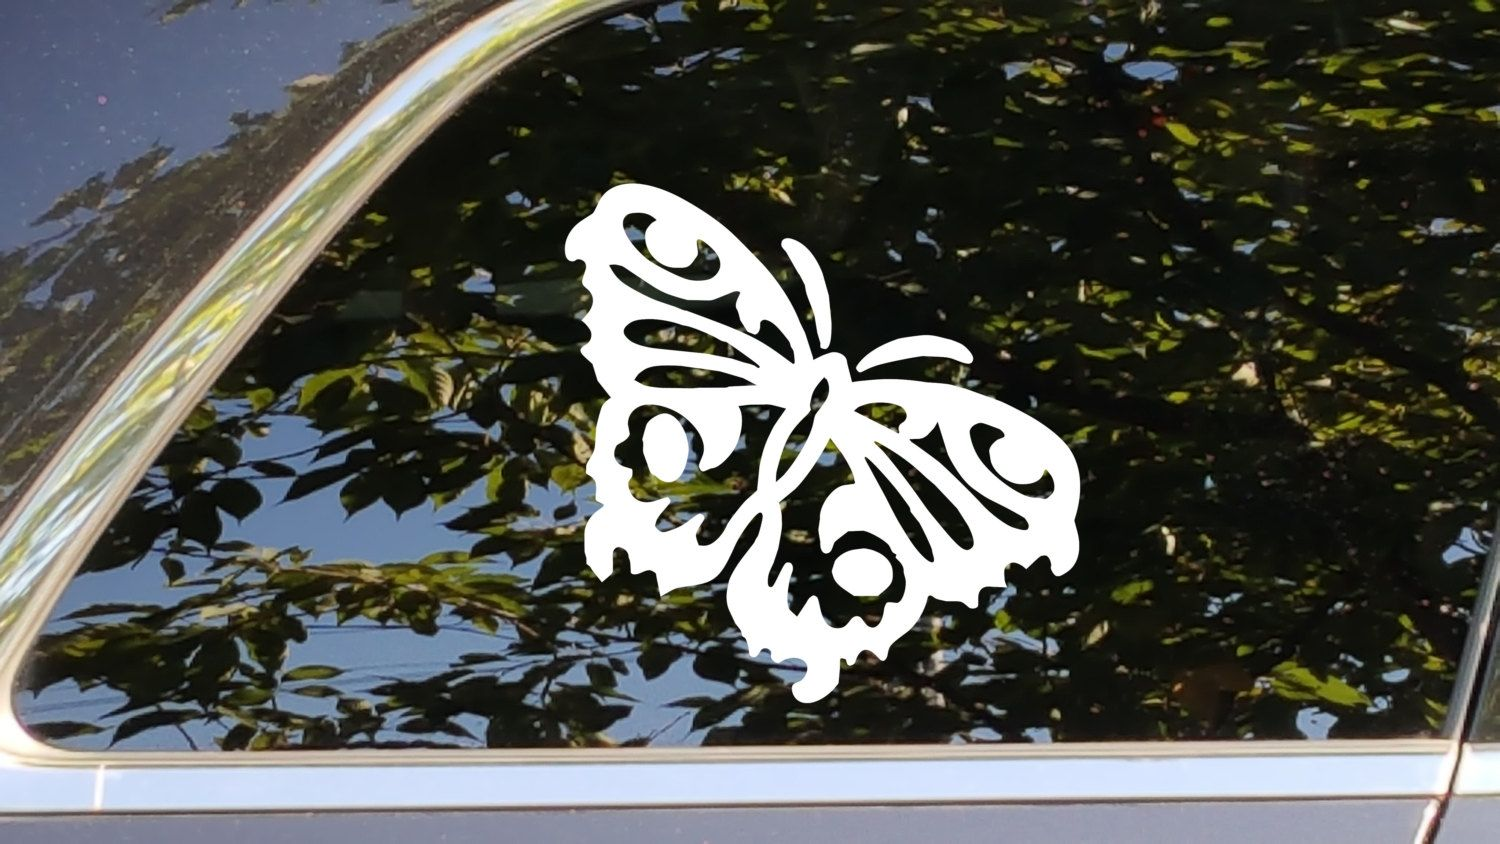 Butterfly Art Vinyl Decal Sticker Accessory For Automotive - Butterfly vinyl decals